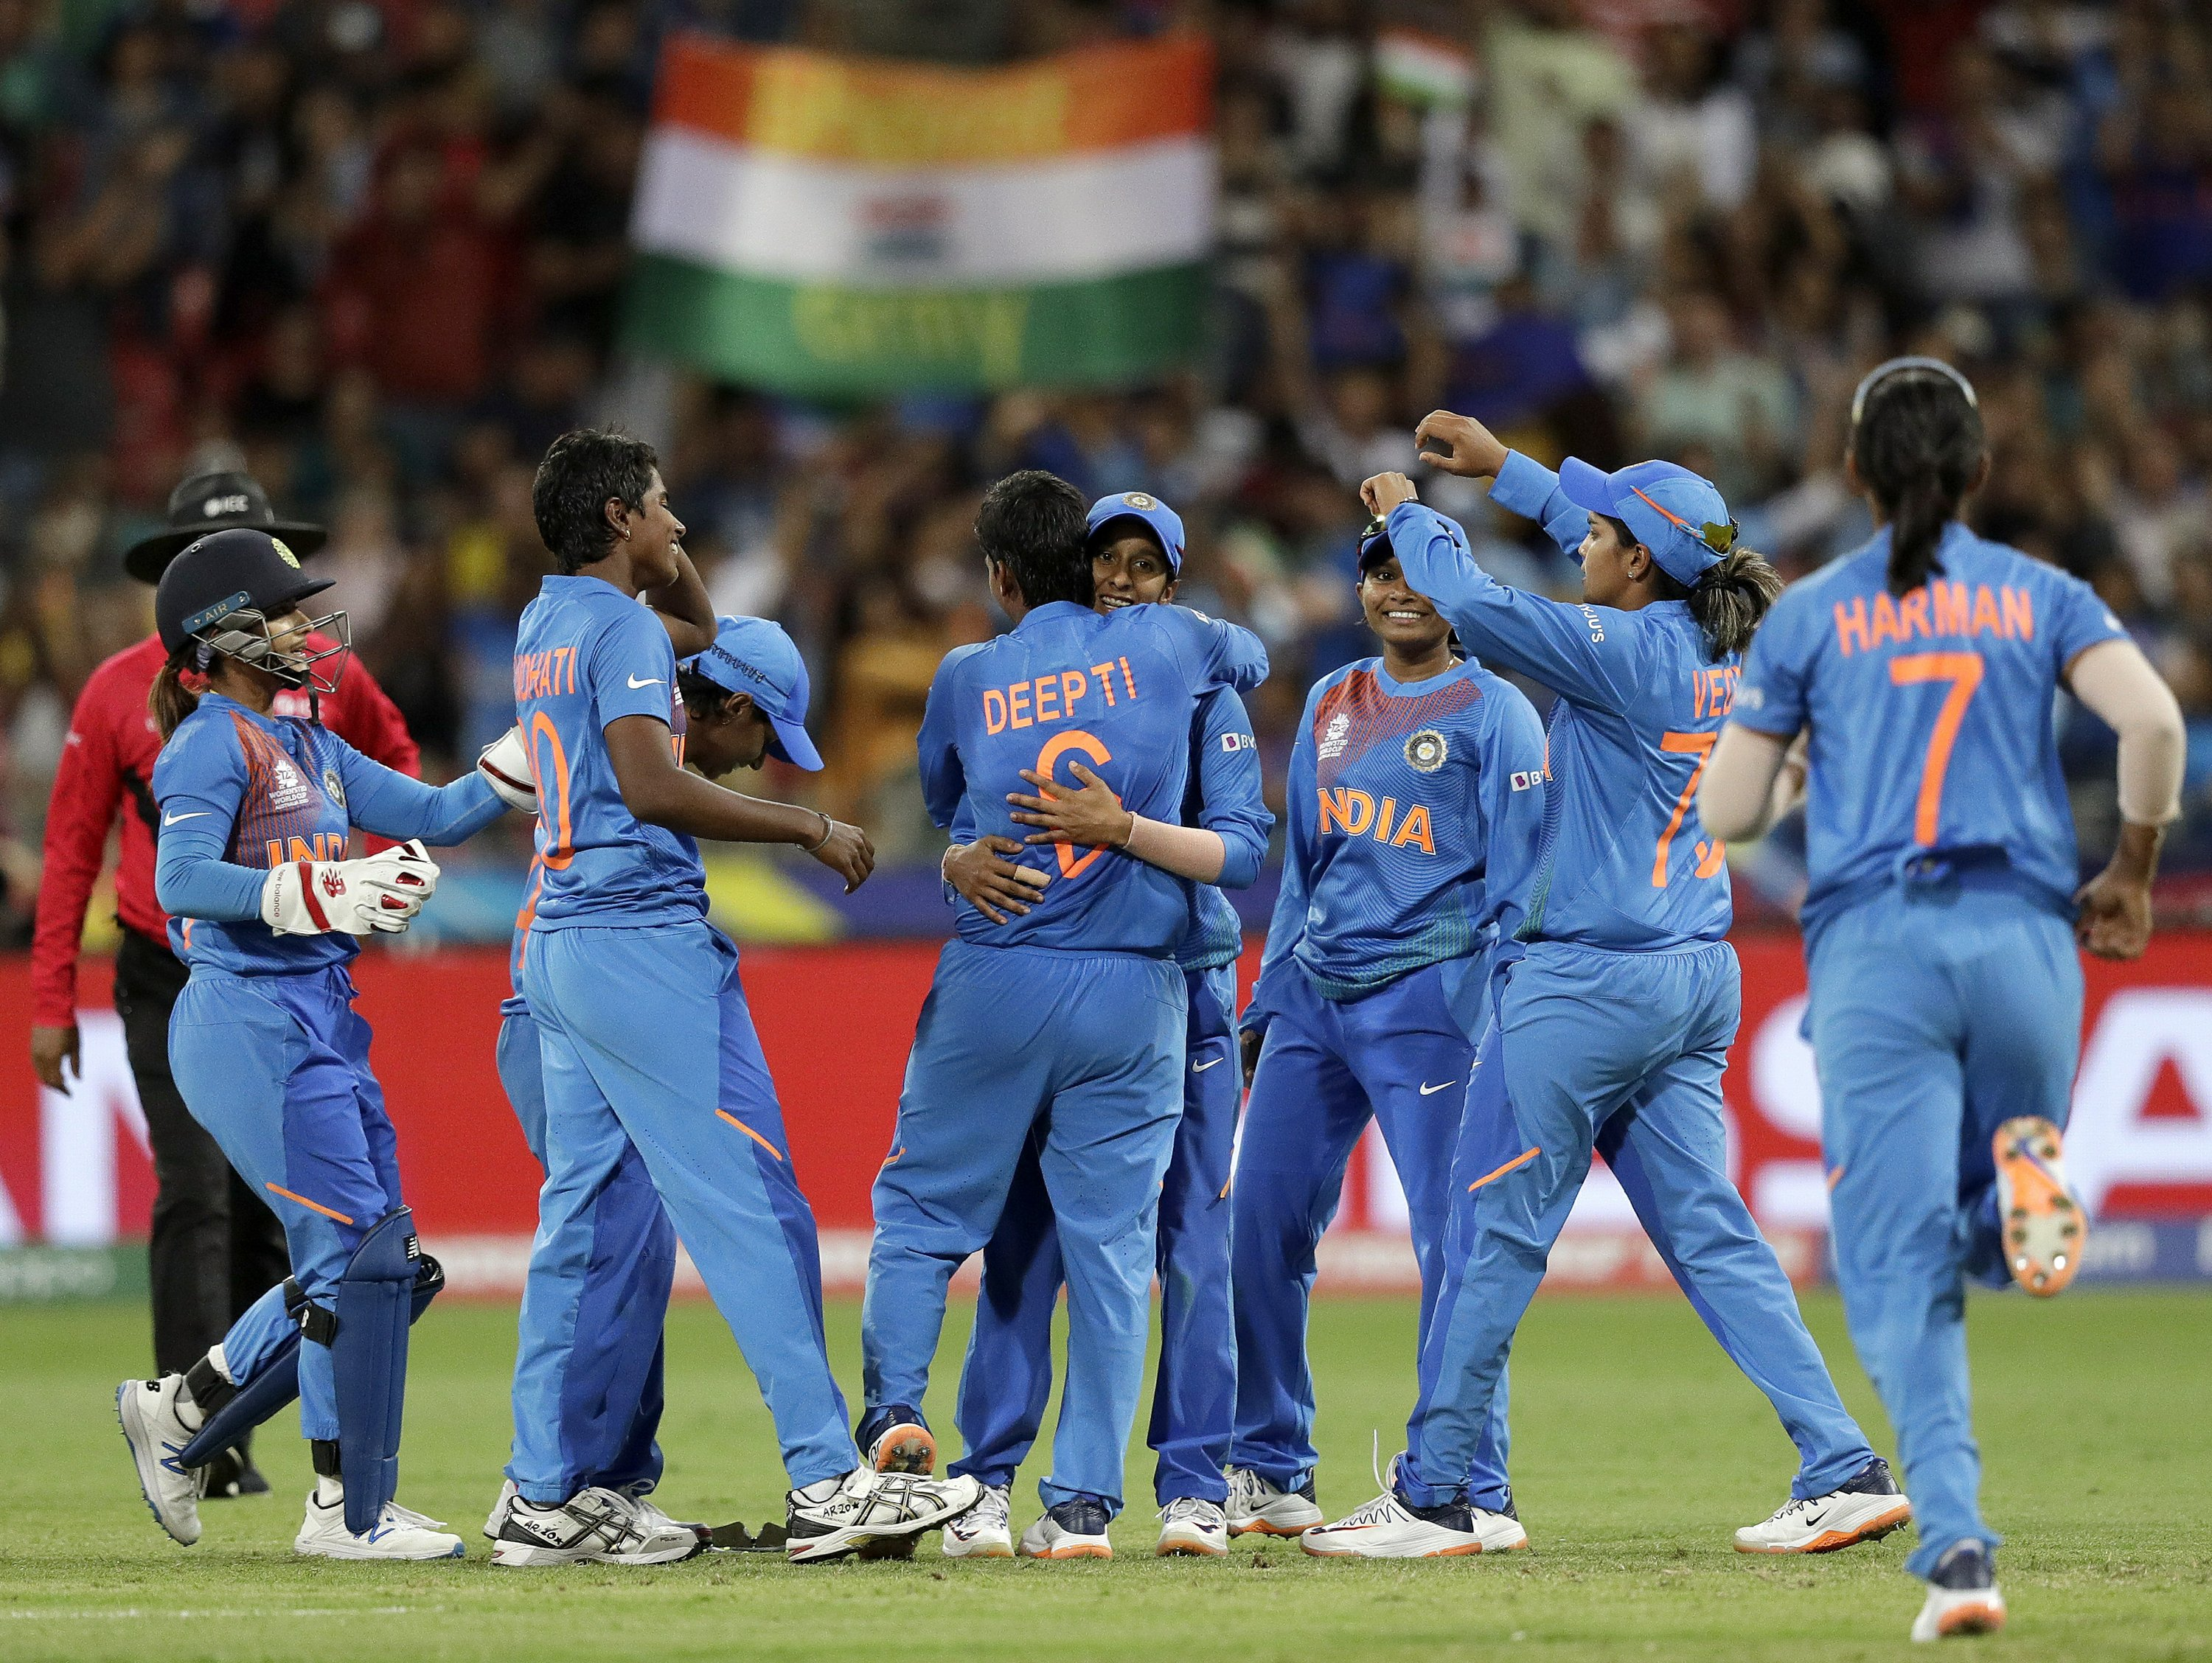 India secures semifinal spot at Women's Twenty20 World Cup